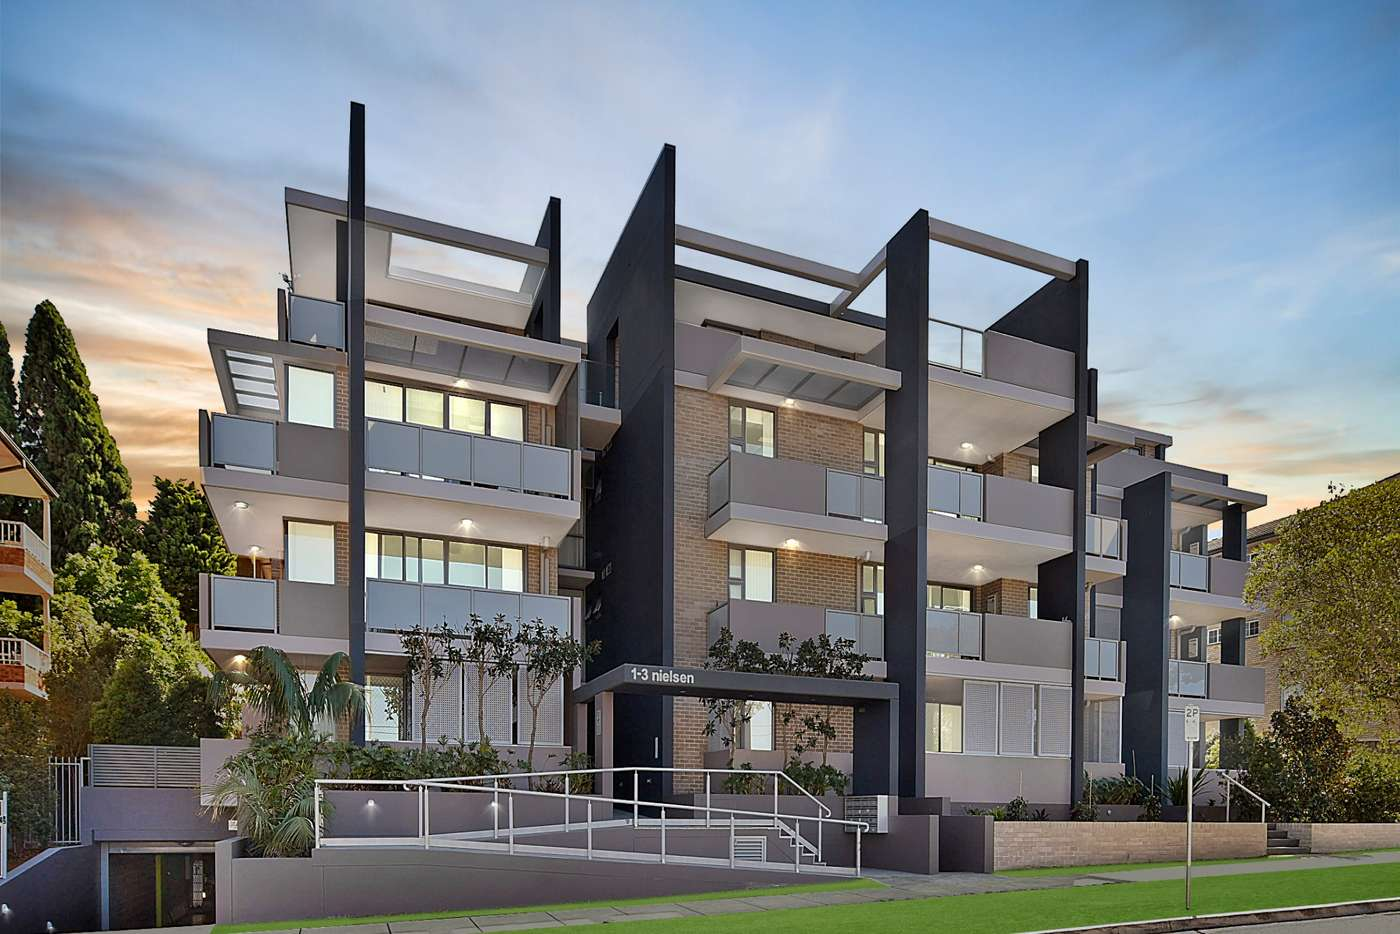 Main view of Homely blockOfUnits listing, 1-14 1-3 Nielsen Avenue, Carlton NSW 2218